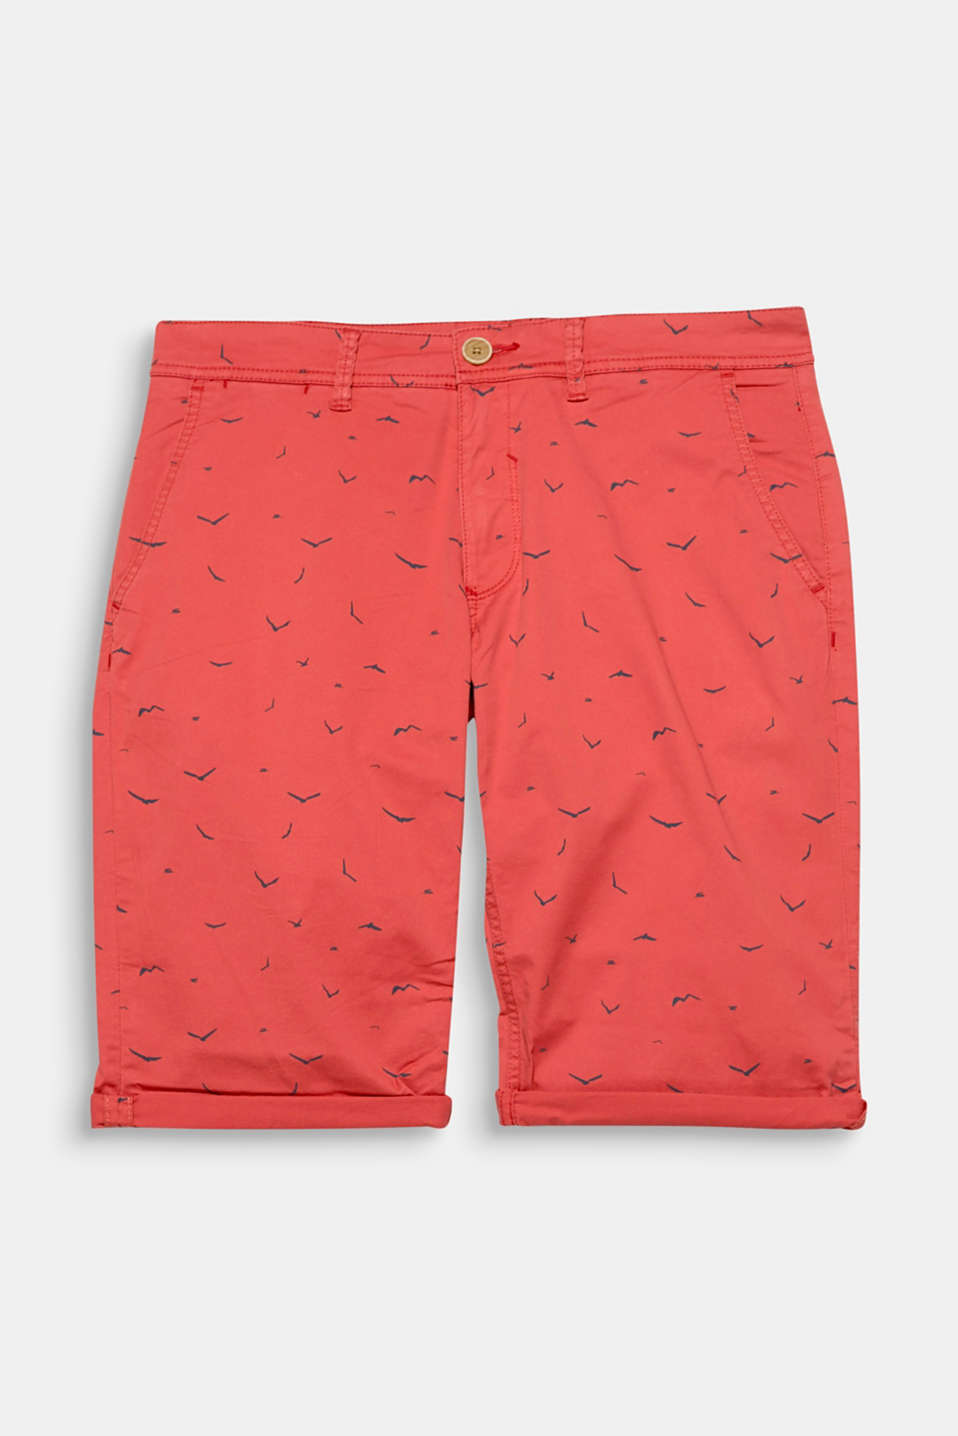 The minimal seagull print on these shorts is getting us ready for the seaside.